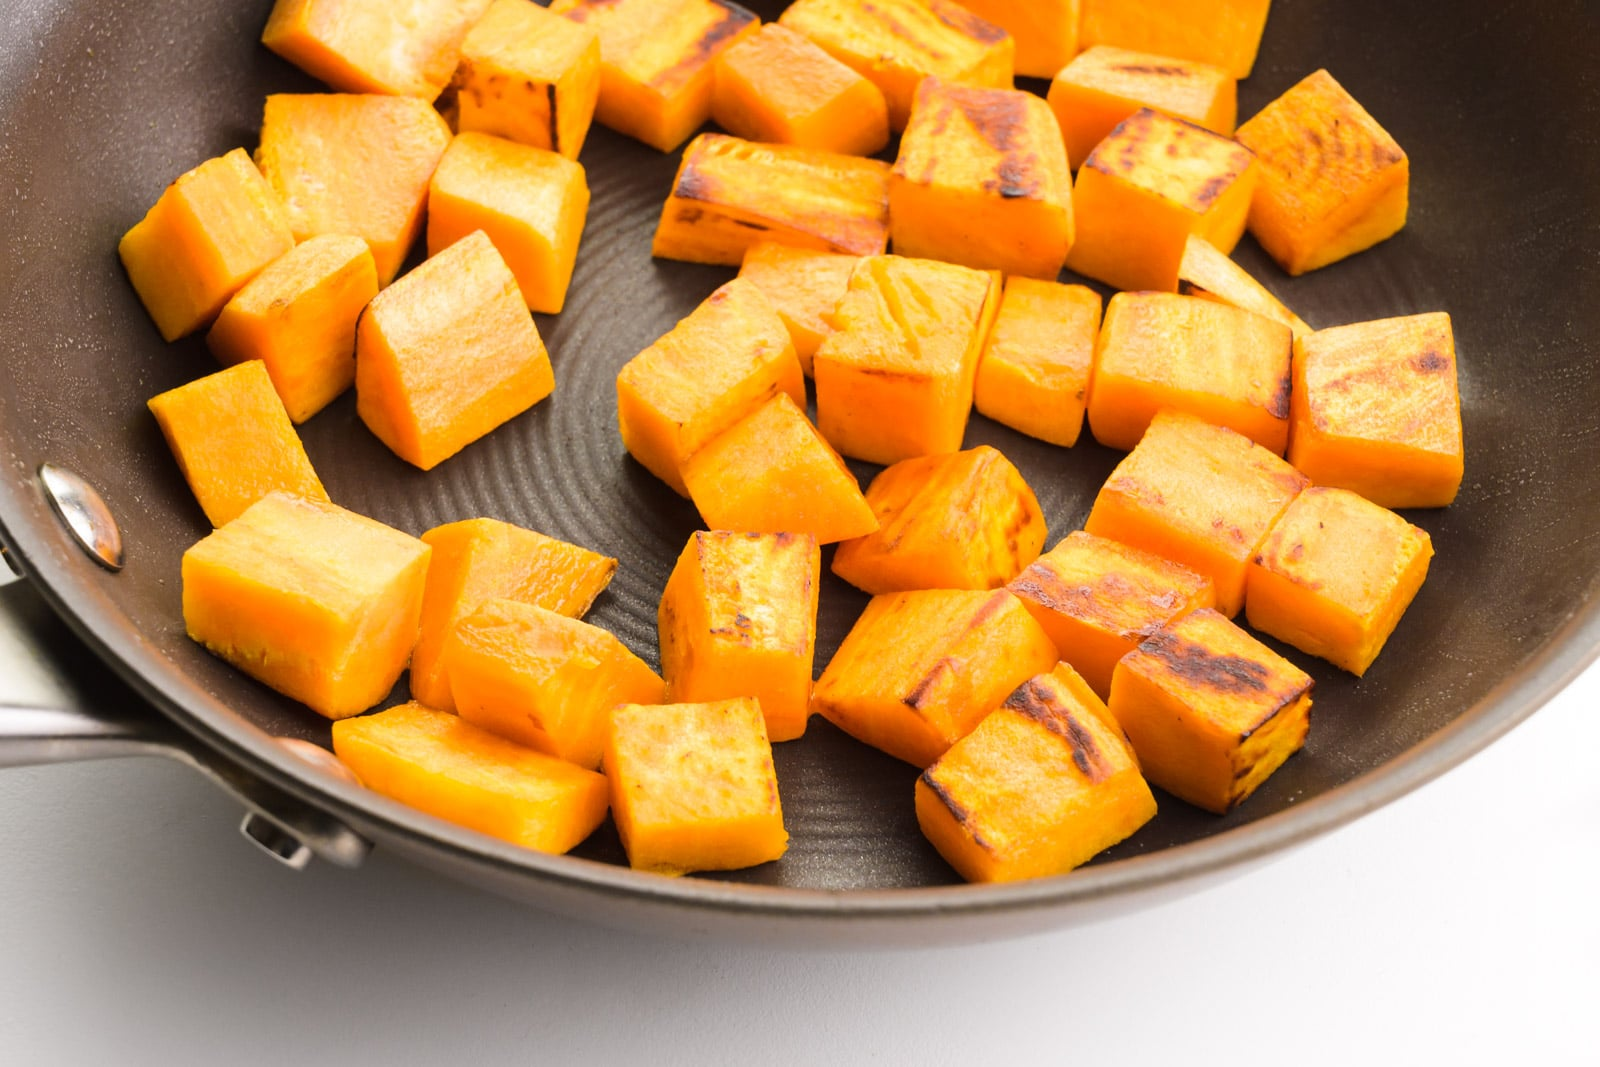 Sweet potato cubes are being sautéed in a skillet.